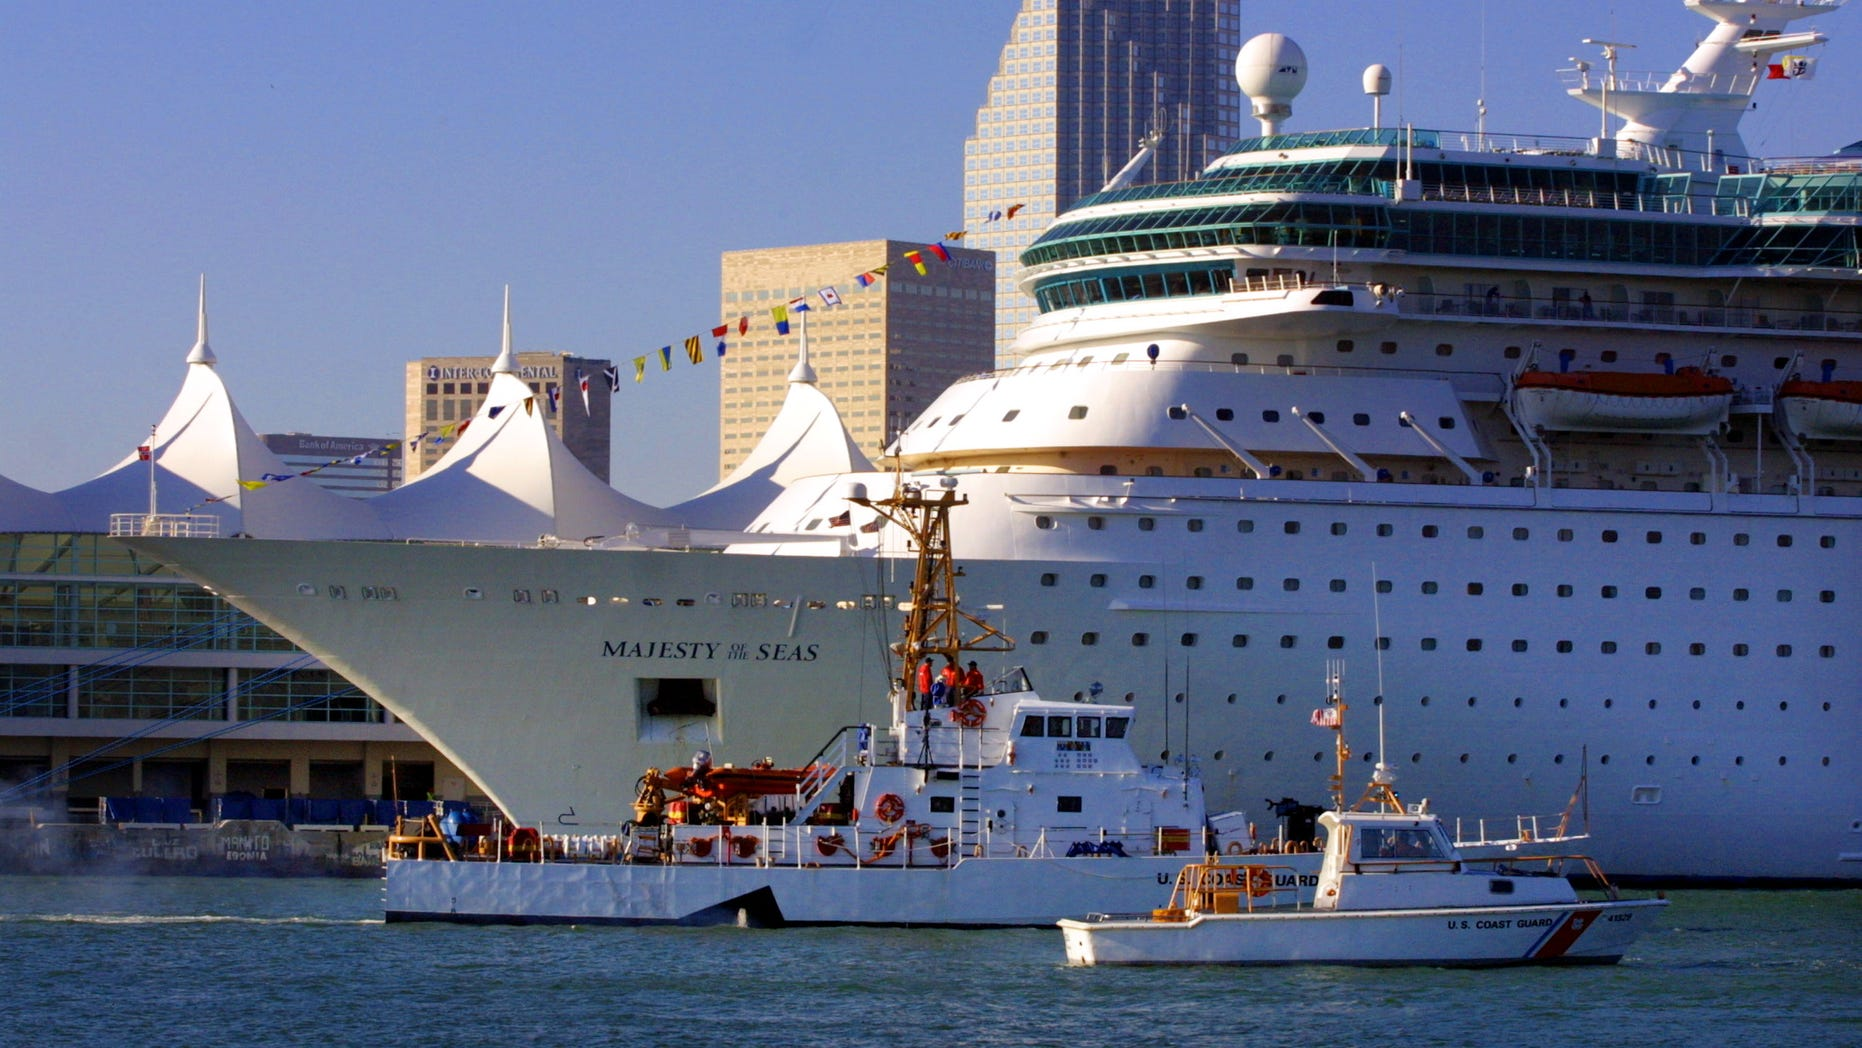 The Majesty of the Seas, seen here at the Port of Miami in 2002, was returning to Florida from a five-day cruise to the Bahamas.